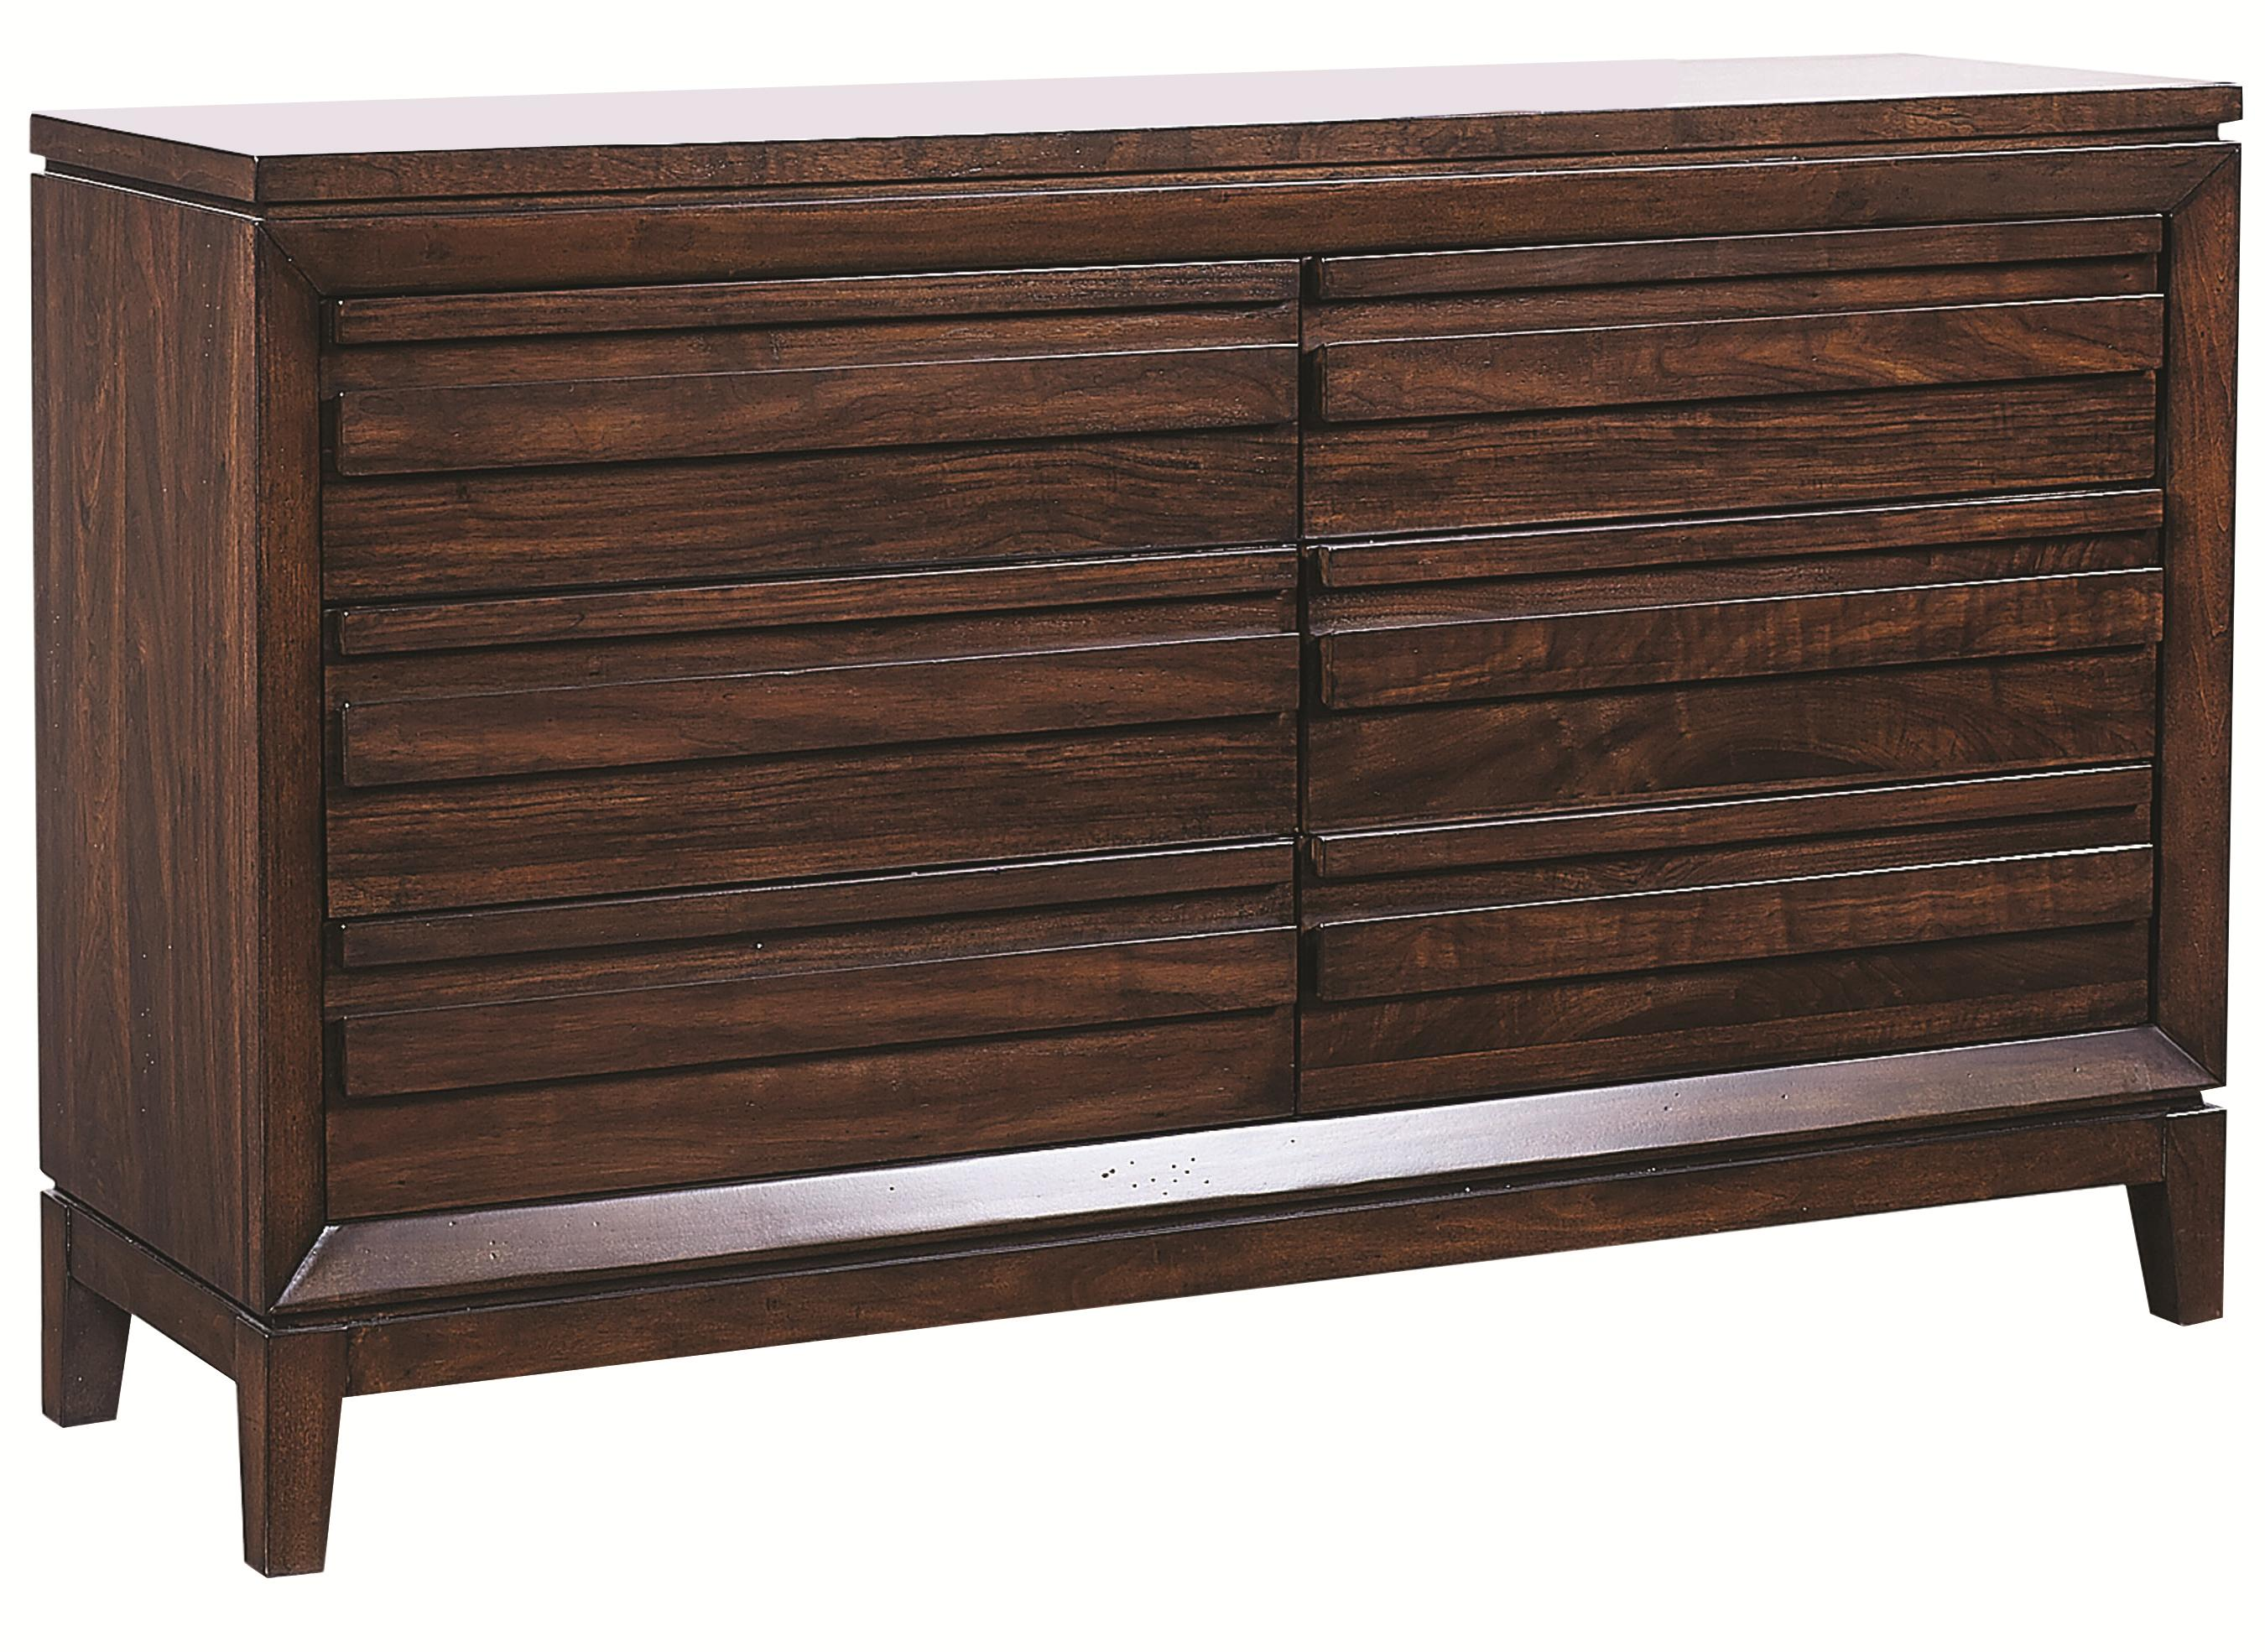 Aspenhome Walnut Park 6 Drawer Dresser - Item Number: I05-453